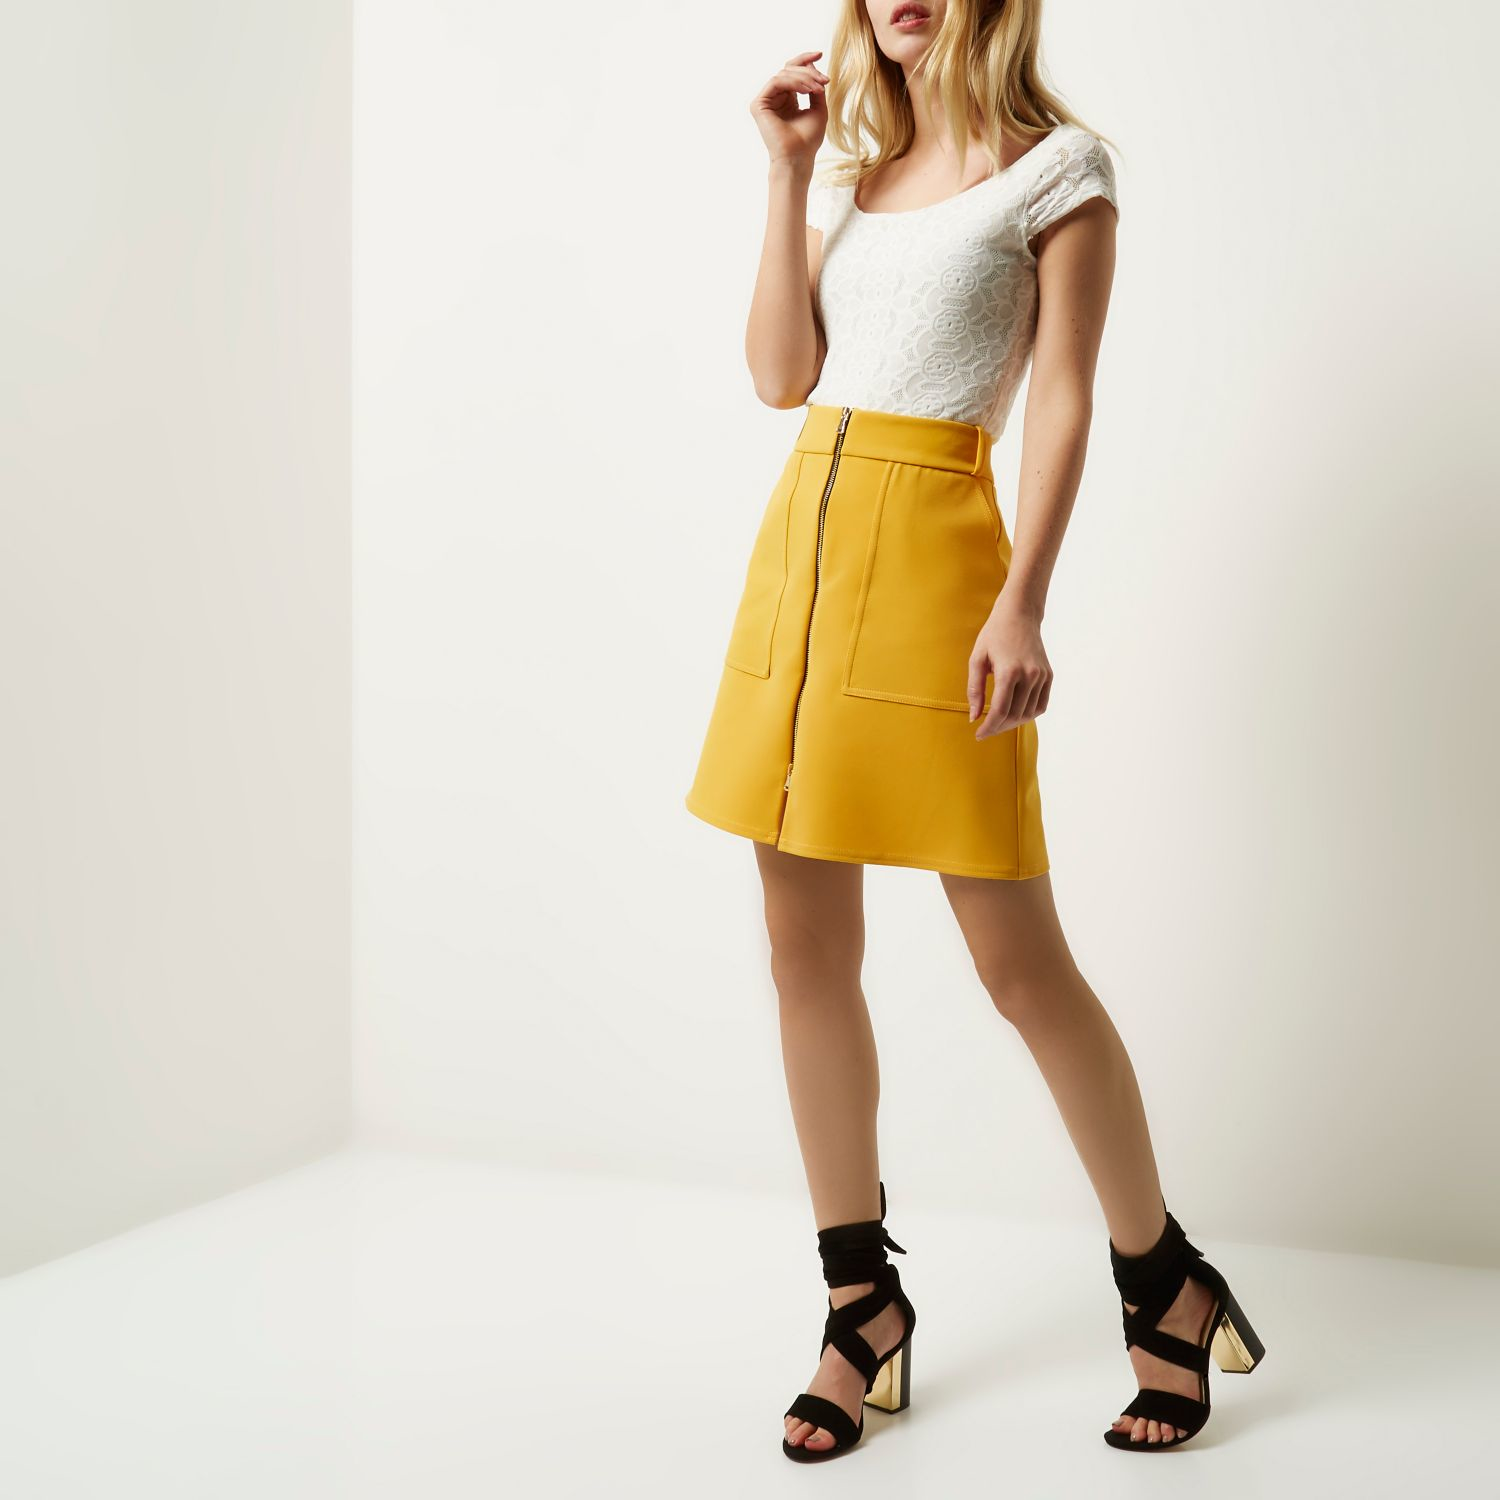 River island Yellow Zip-up A-line Skirt in Yellow | Lyst